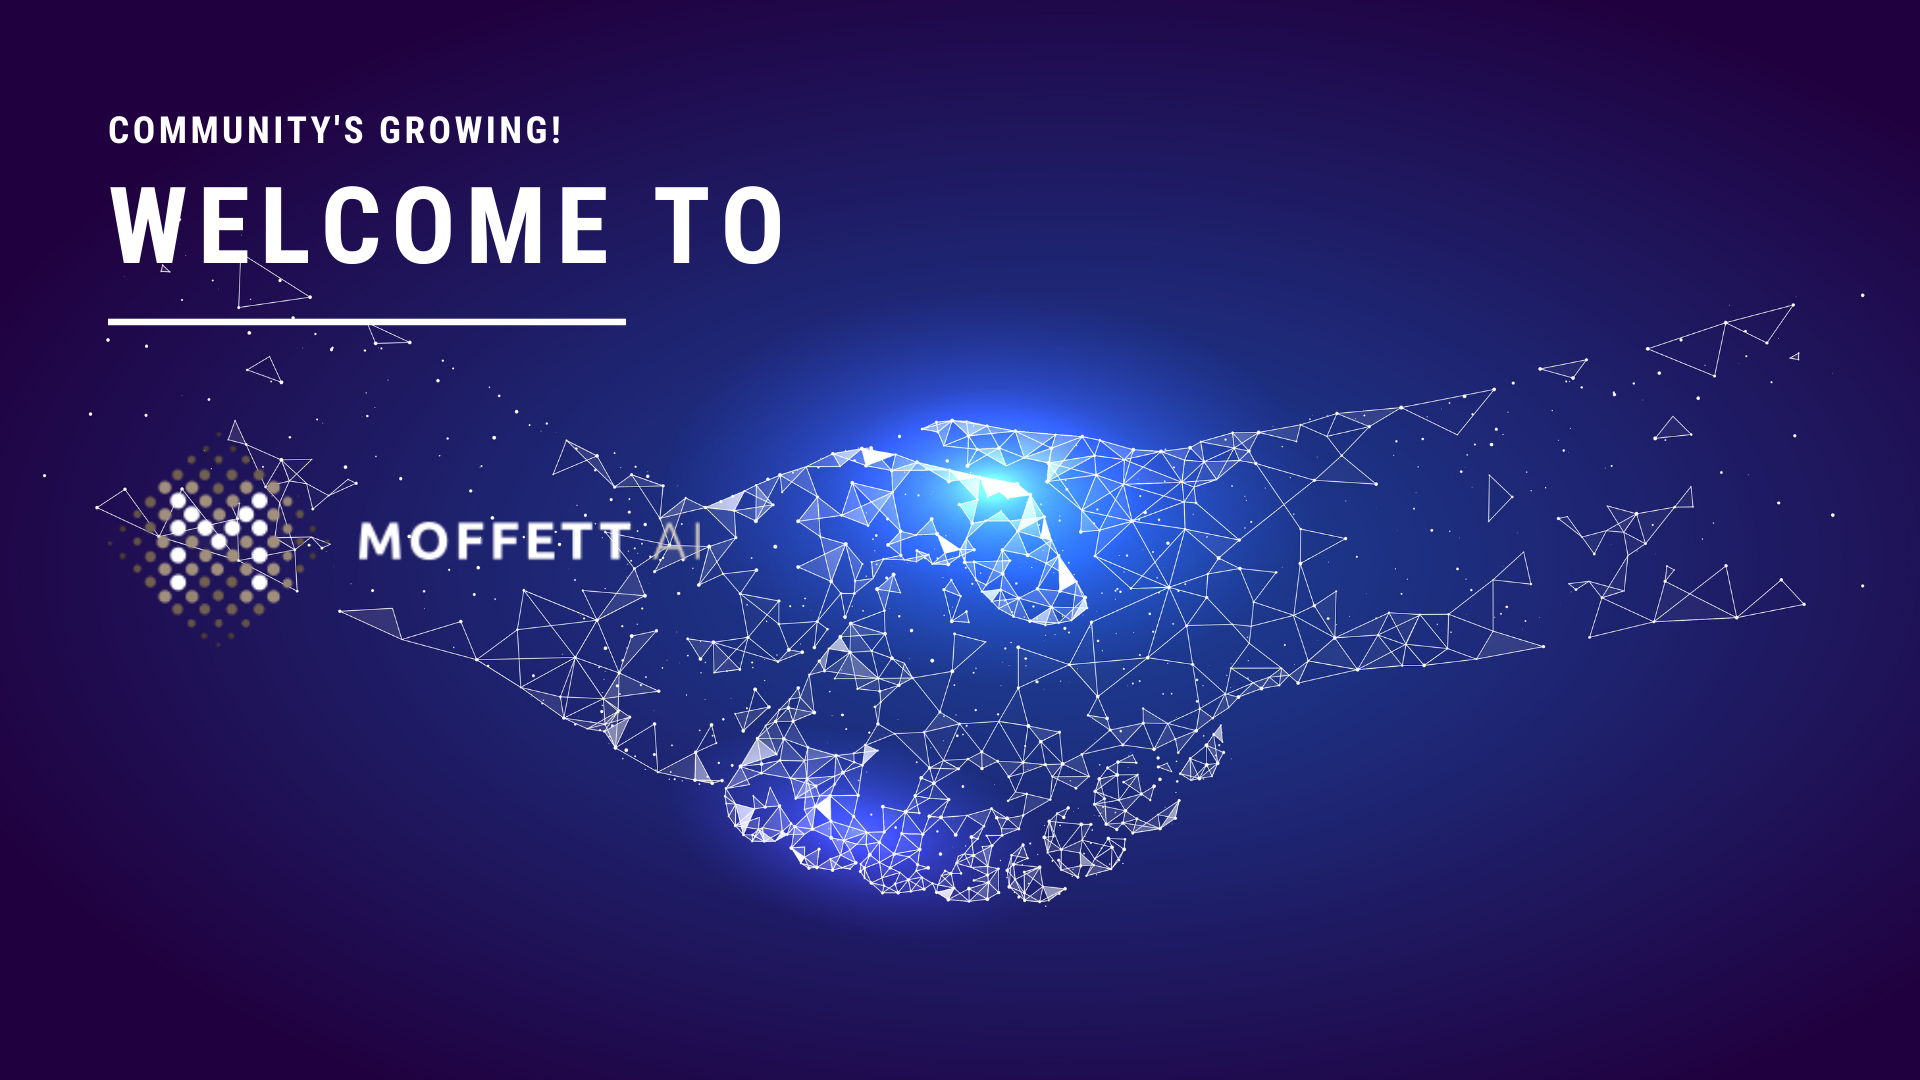 WELCOME TO MOFFETT.AI